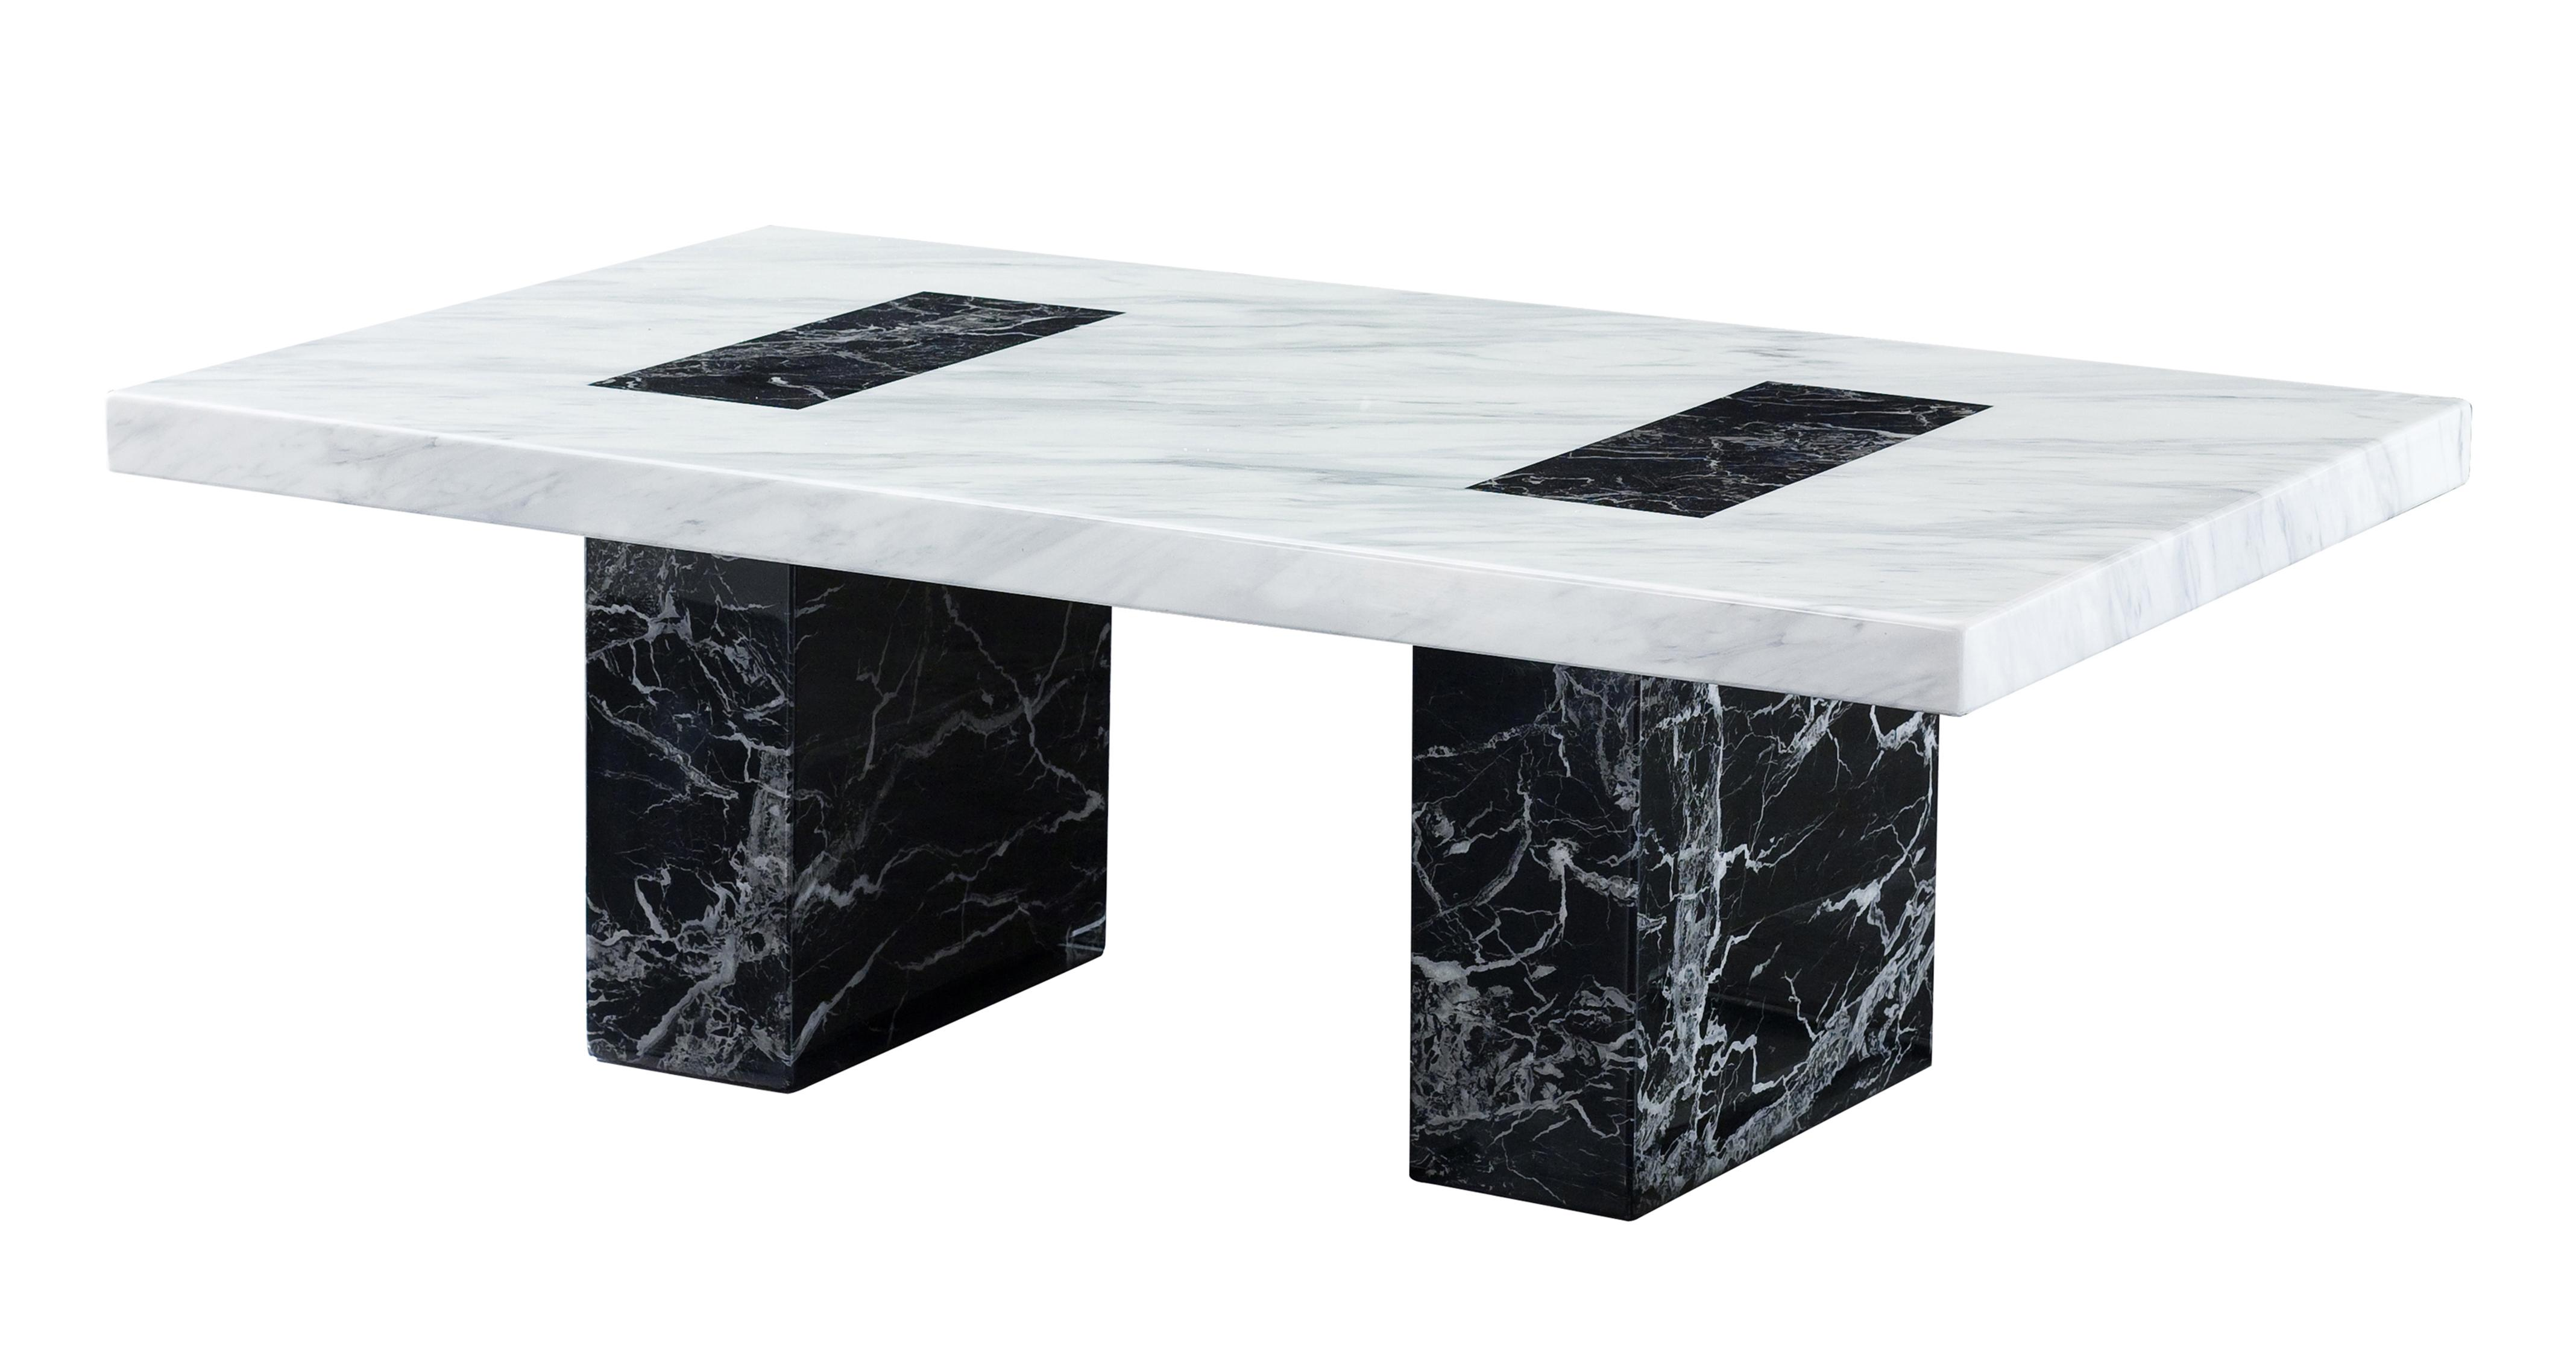 Vienna Coffee Table Vienna Marble DFS : viennaoaviennamarbleblackandwhiteview1 from www.dfs.co.uk size 4273 x 2268 jpeg 401kB